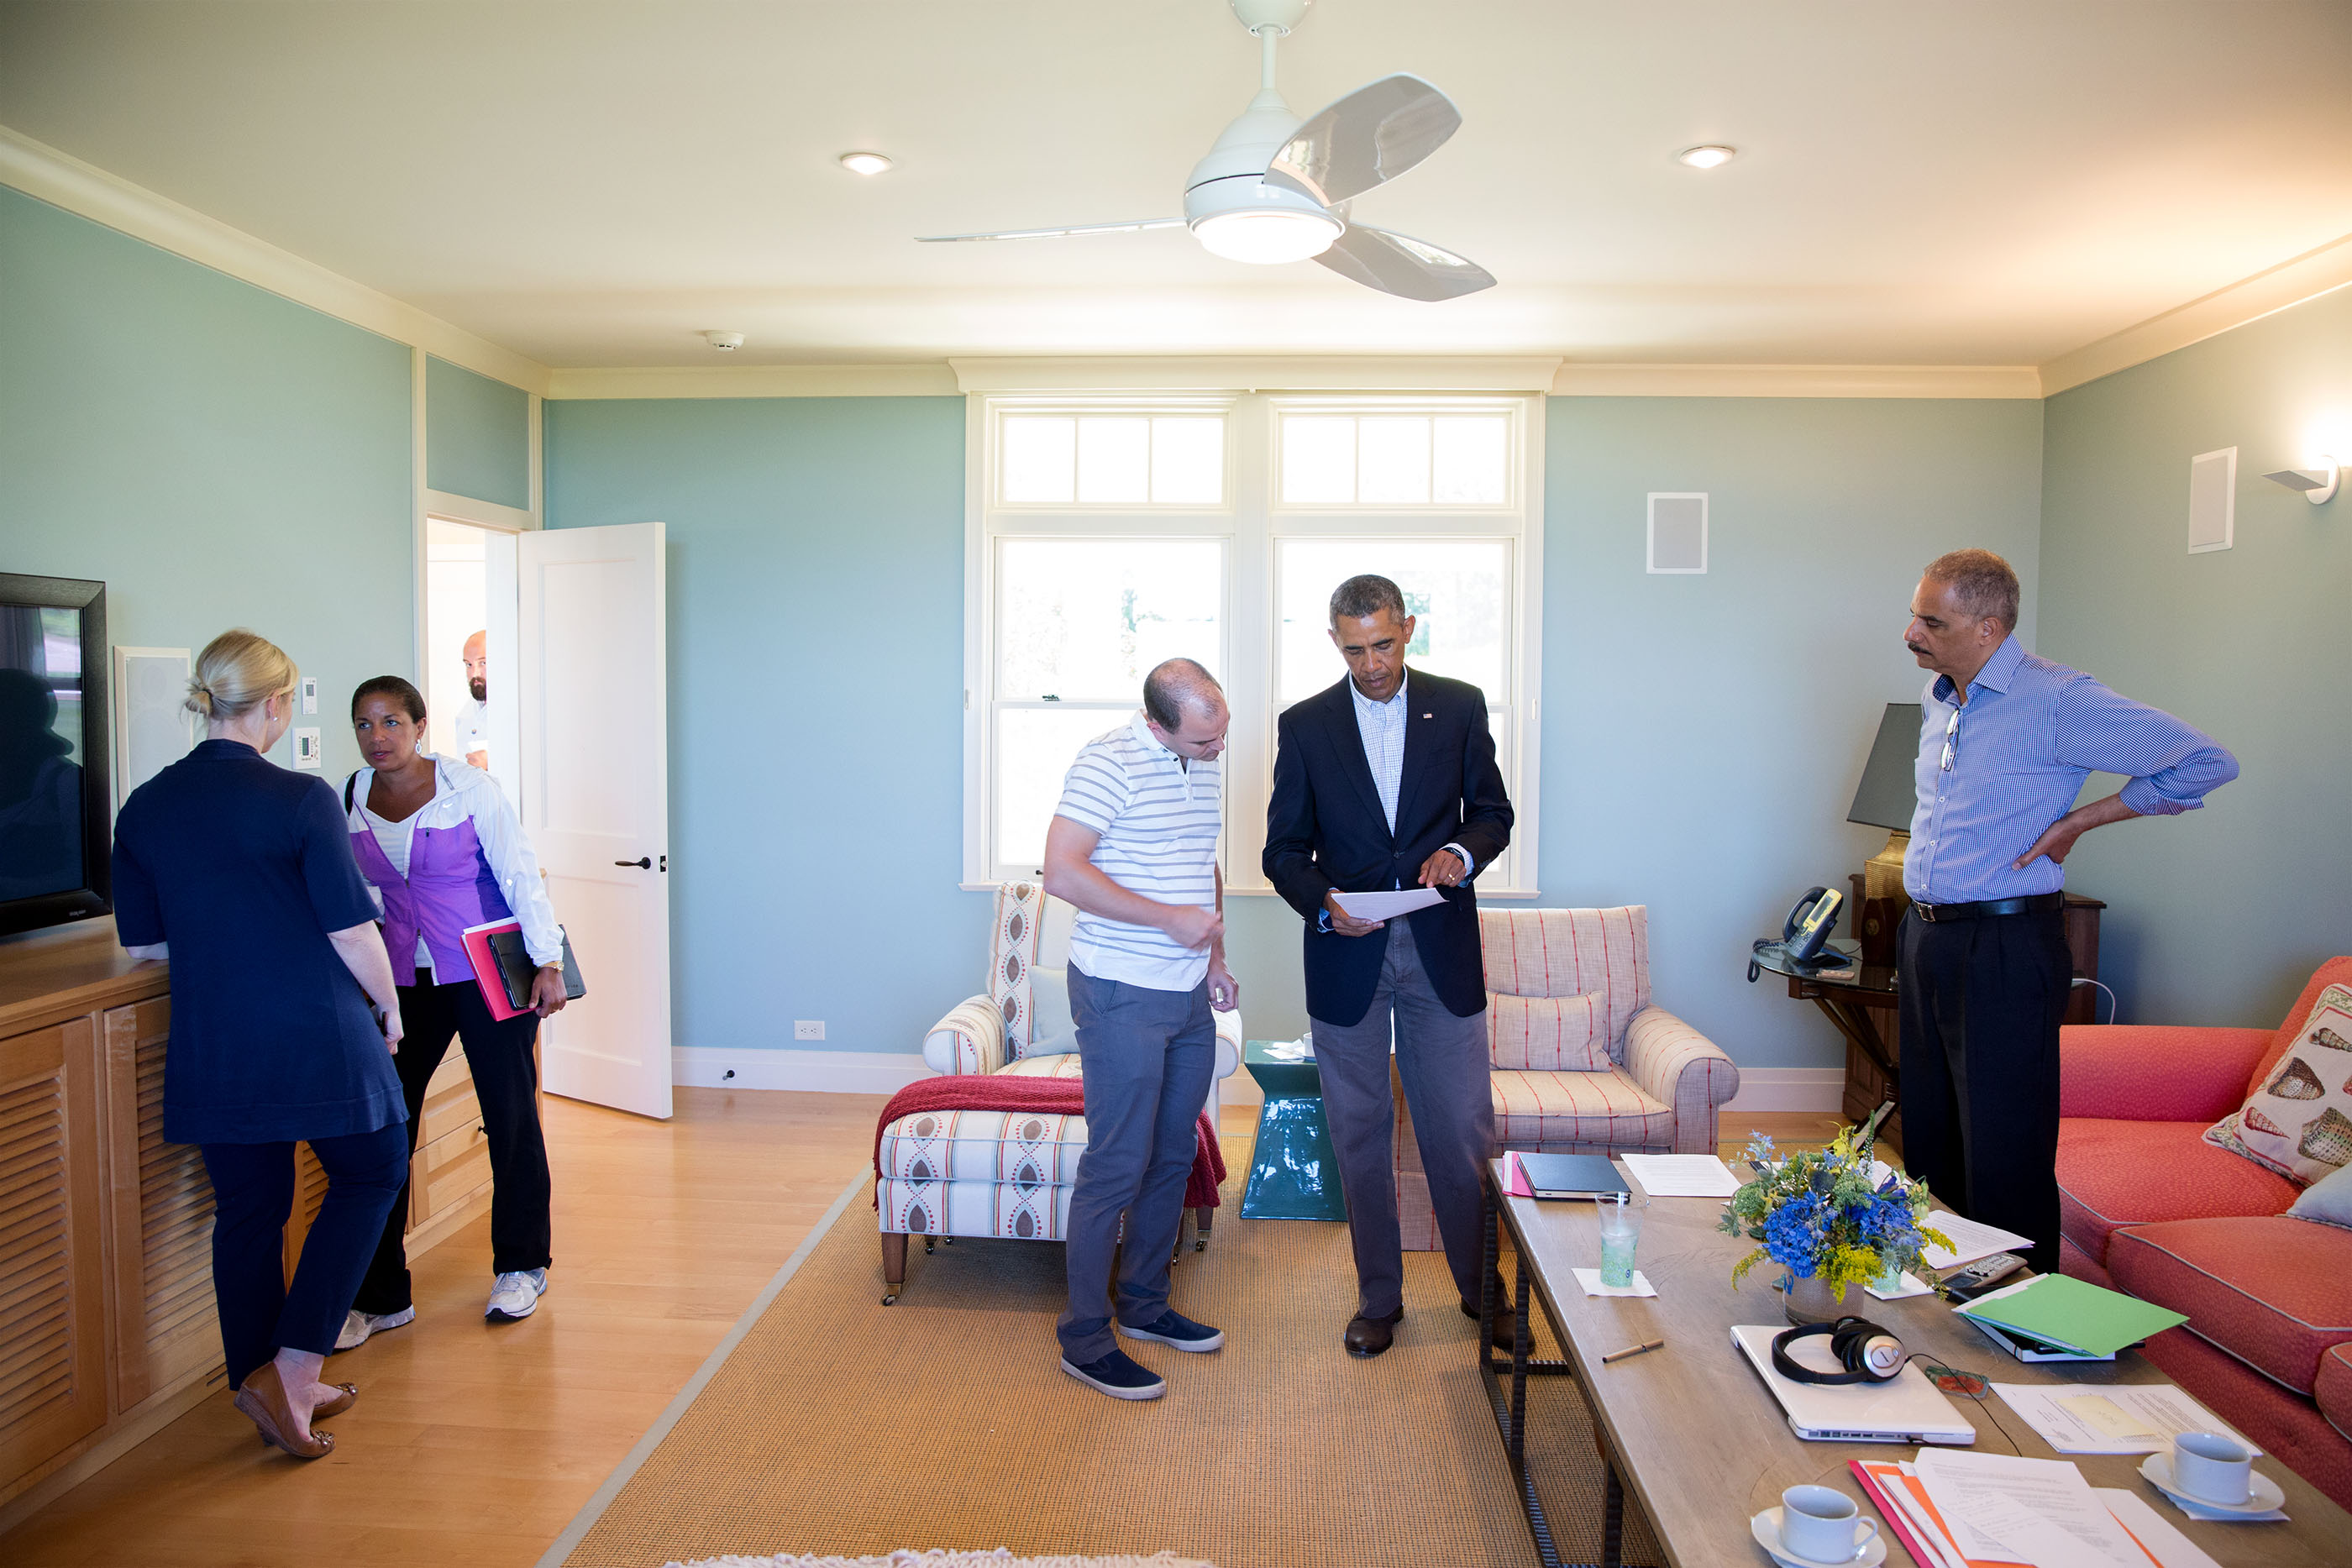 Massachusetts, Aug. 14, 2014. Discussing the situation in Ferguson, Missouri, while on vacation in Martha's Vineyard. (Official White House Photo by Pete Souza)